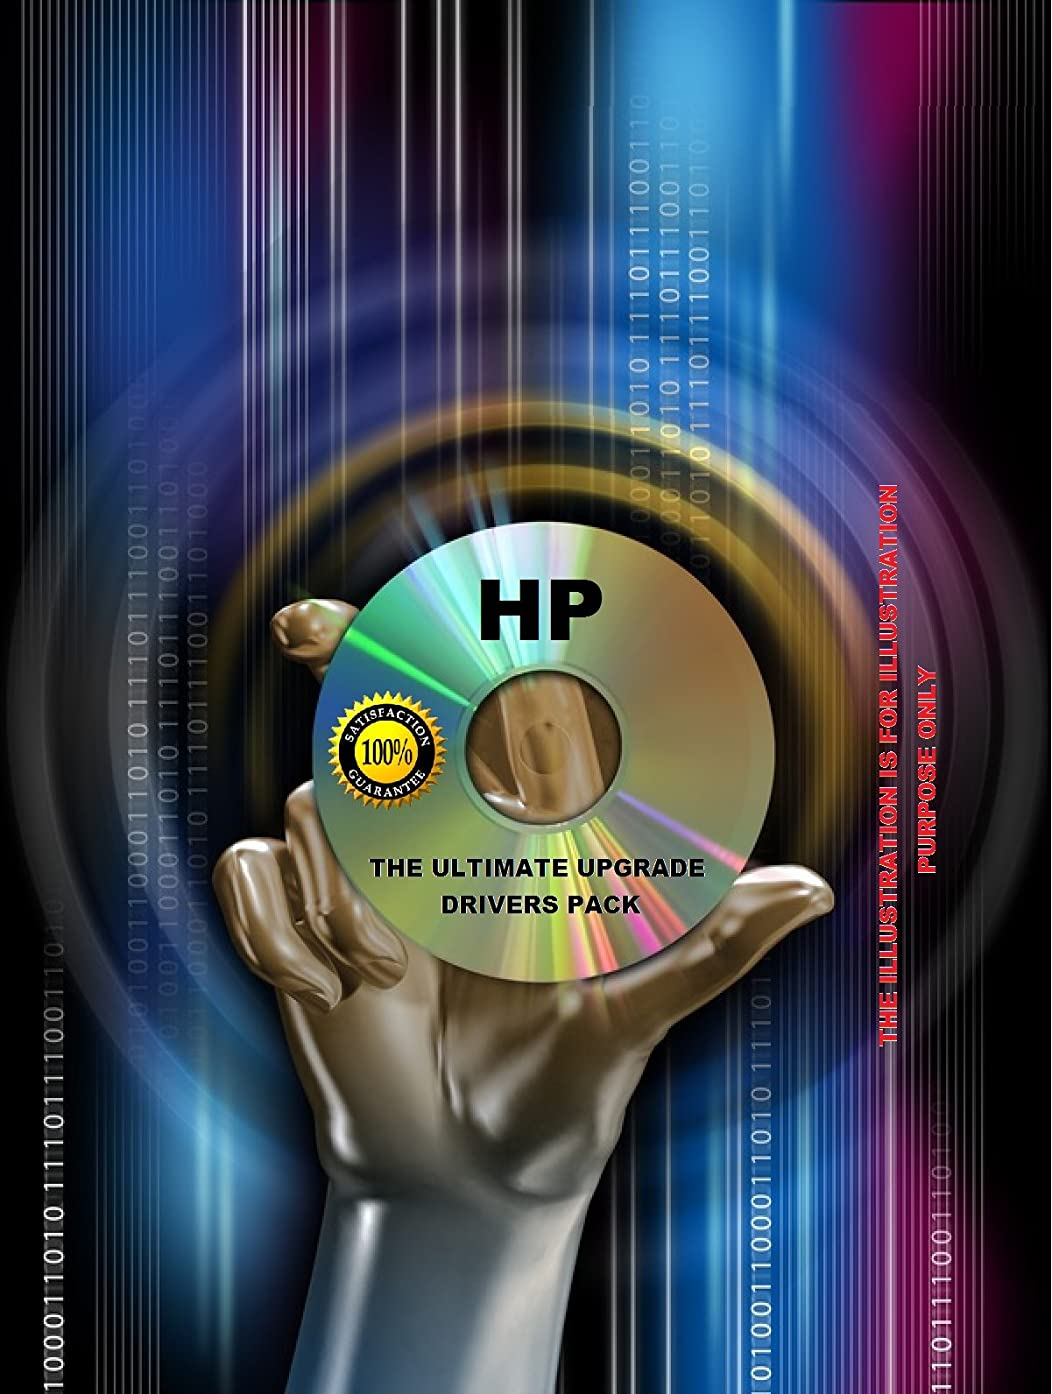 Drivers Recovery & Restore for HP HP Compaq 6530b (FP563PA#AKL), Fast Repair!DVD, ALL drivers for audio, video, chipset, Wi-Fi, Usb and+, Everything you need to fix your drivers problems!(Last Version) All Windows!